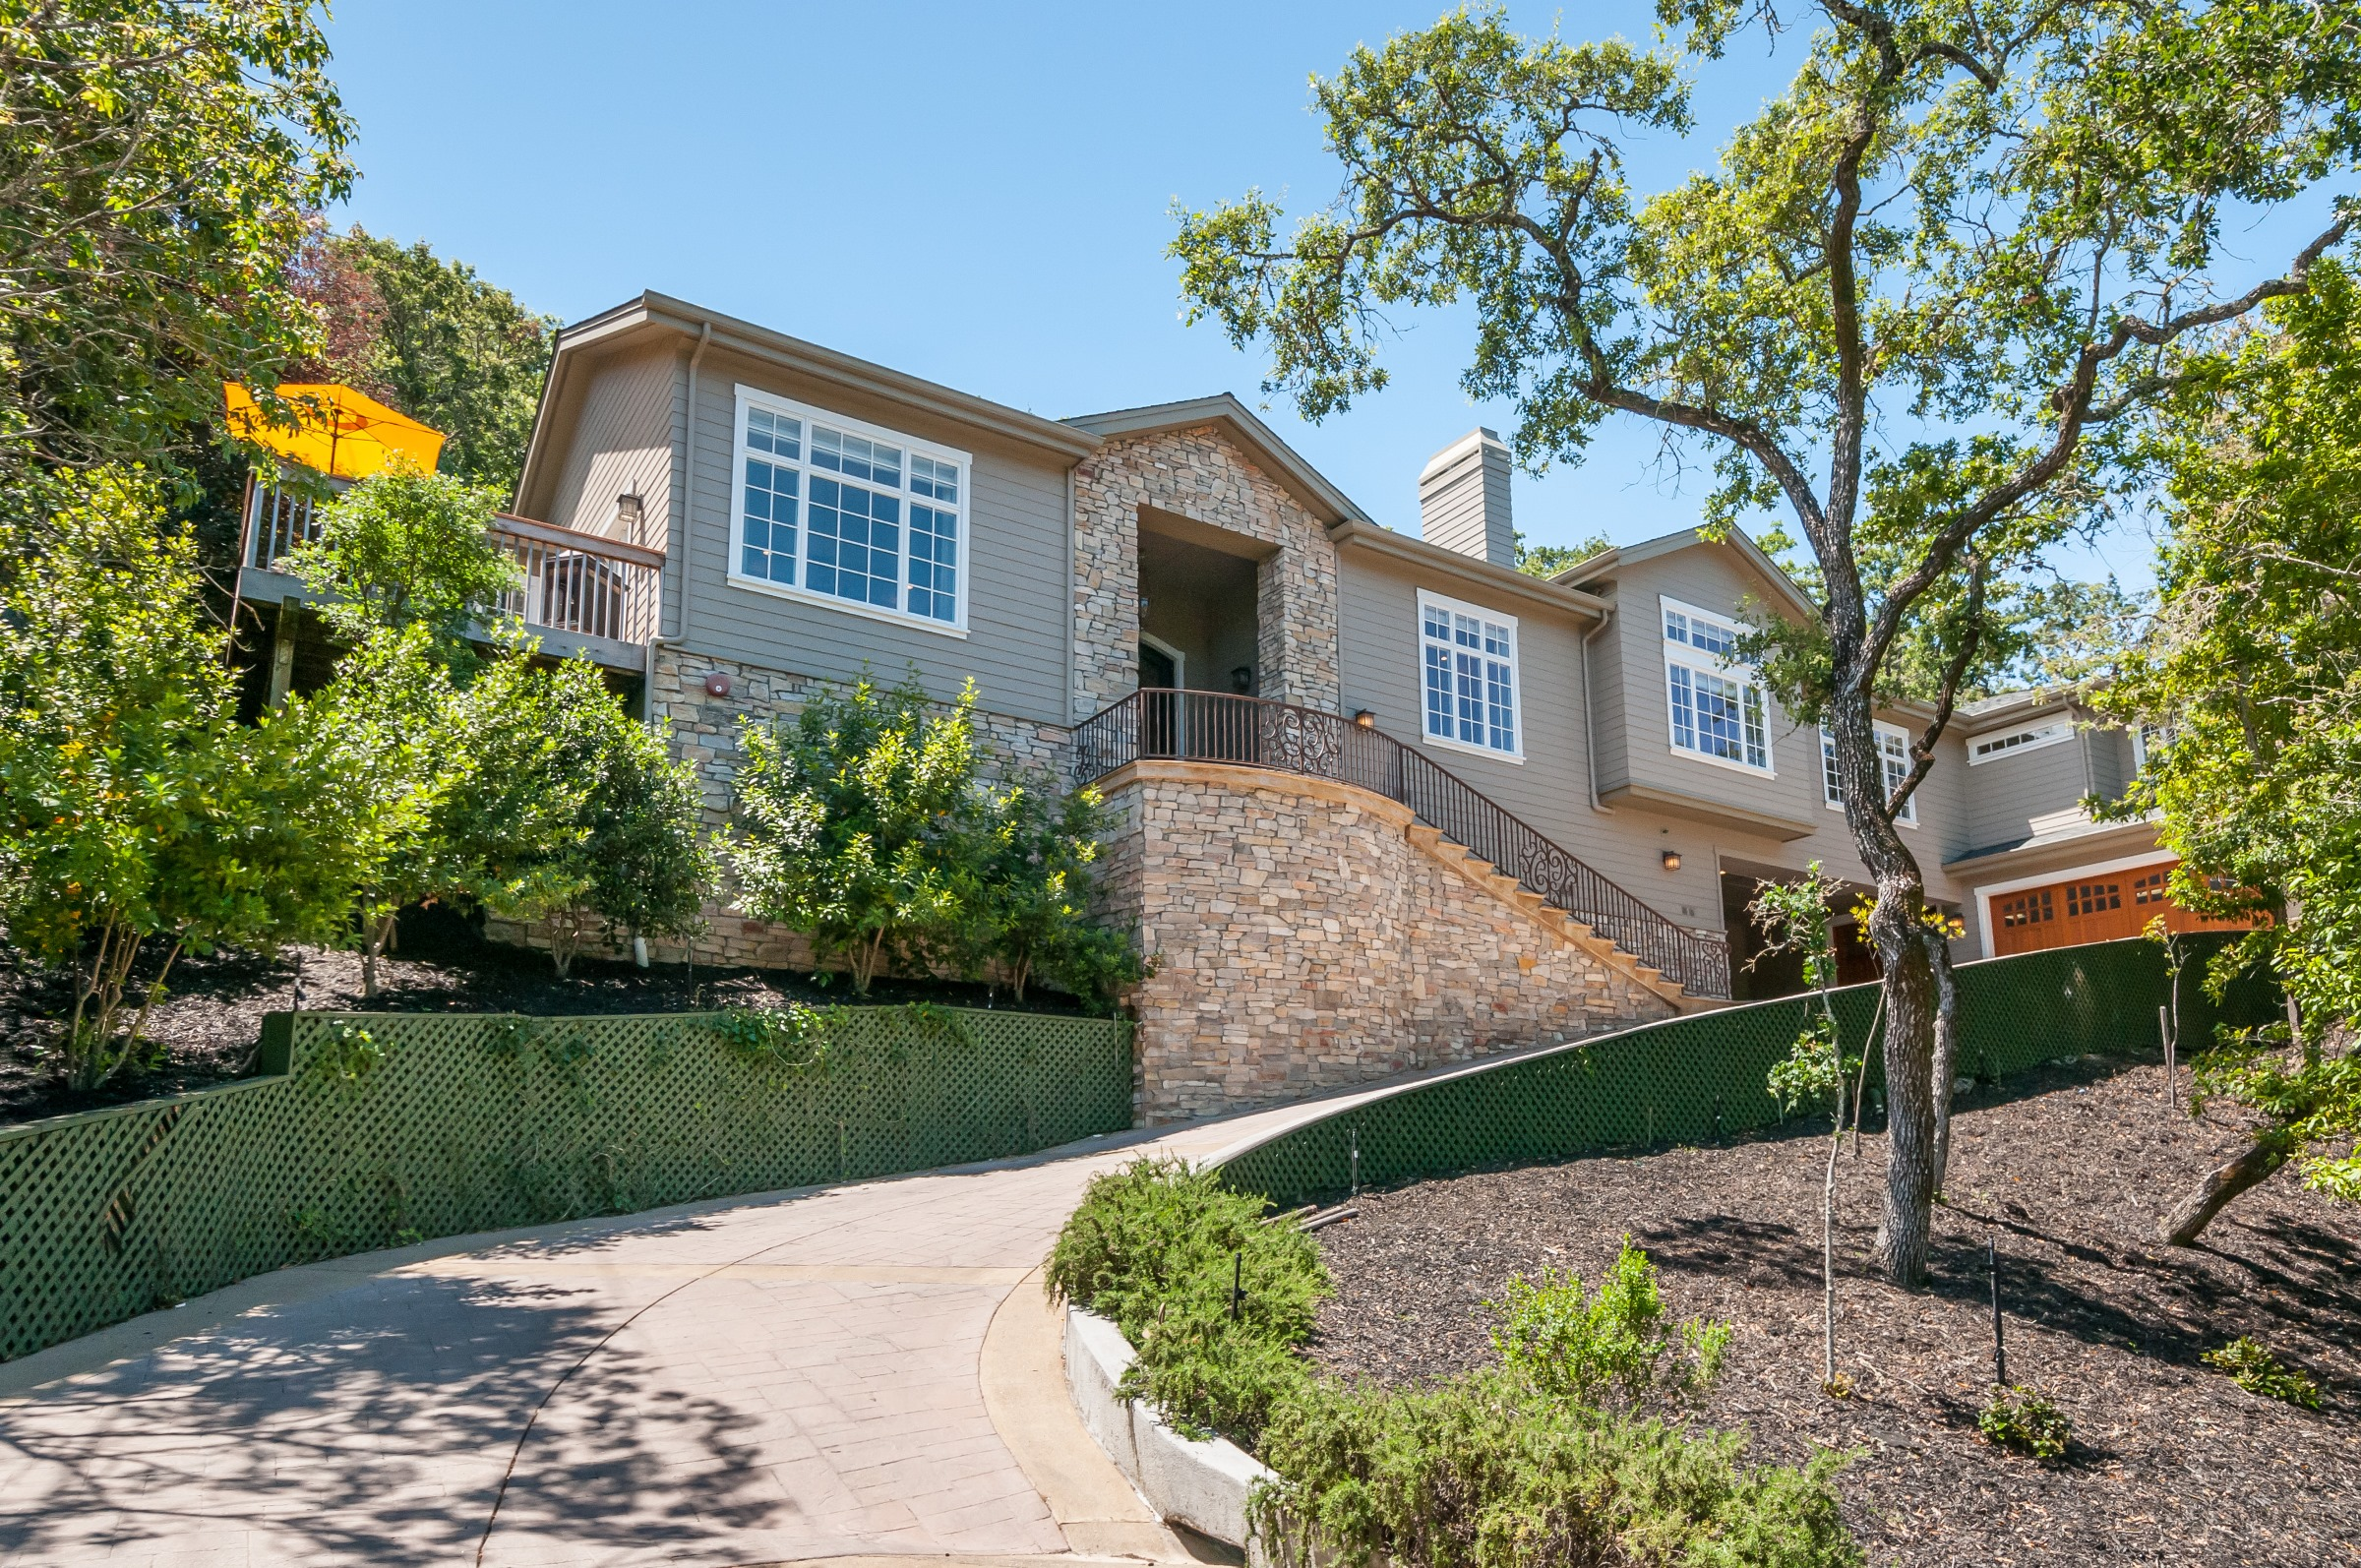 129 Lakeview Way, Emerald Hills, CA 94062